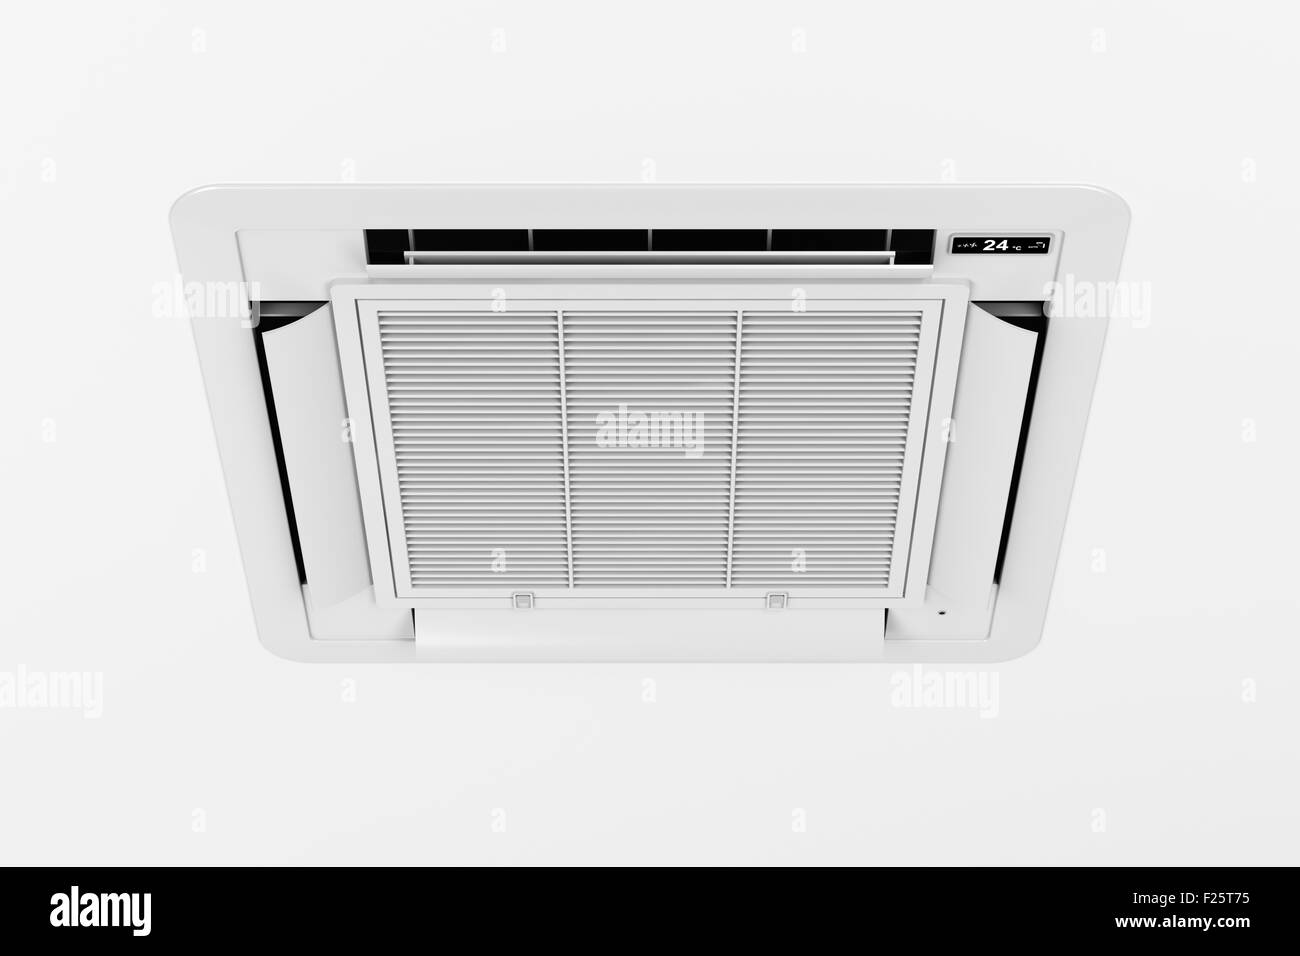 Decke montiert Kassette Typ Air conditioner Stockbild